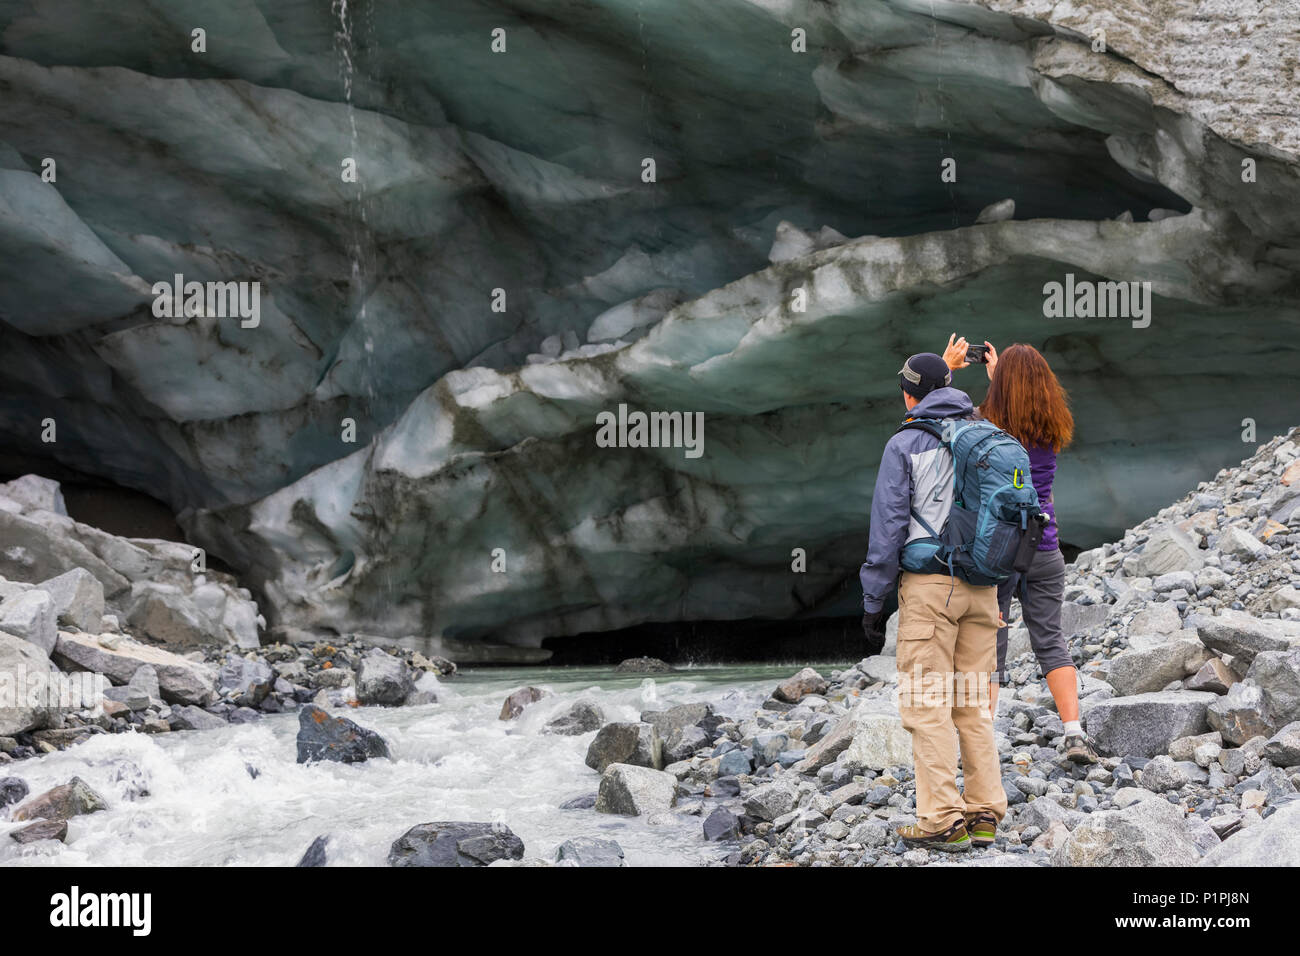 A woman takes a photograph of an ice cave with her cell phone while hiking to Gulkana Glacier with her husband; Alaska, United States of America - Stock Image